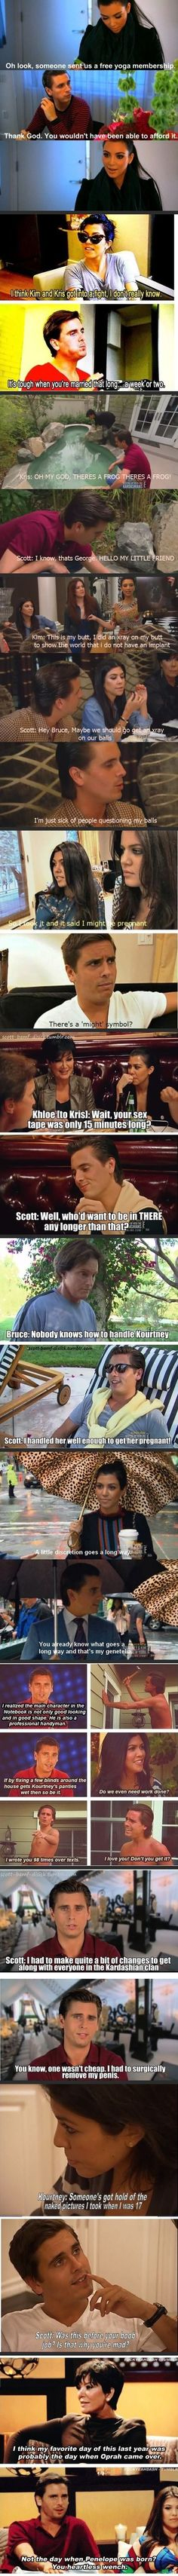 Scott Disick  // funny pictures - funny photos - funny images - funny pics - funny quotes - #lol #humor #funnypictures